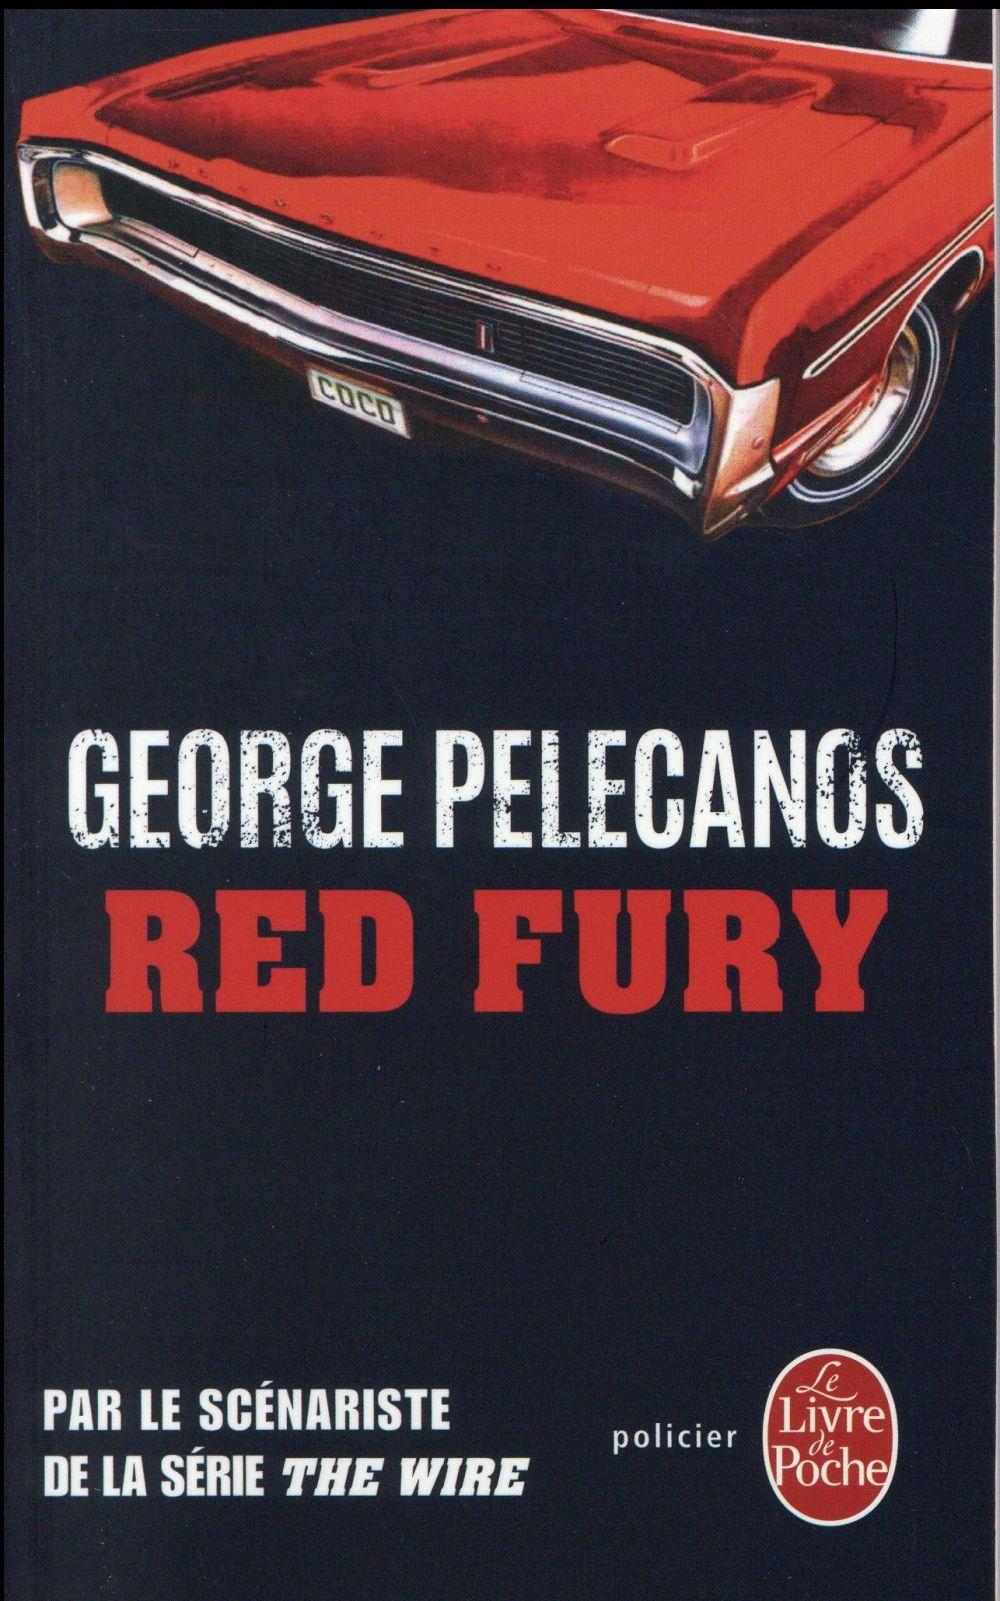 Vente Livre :                                    Red fury                                      - George Pelecanos